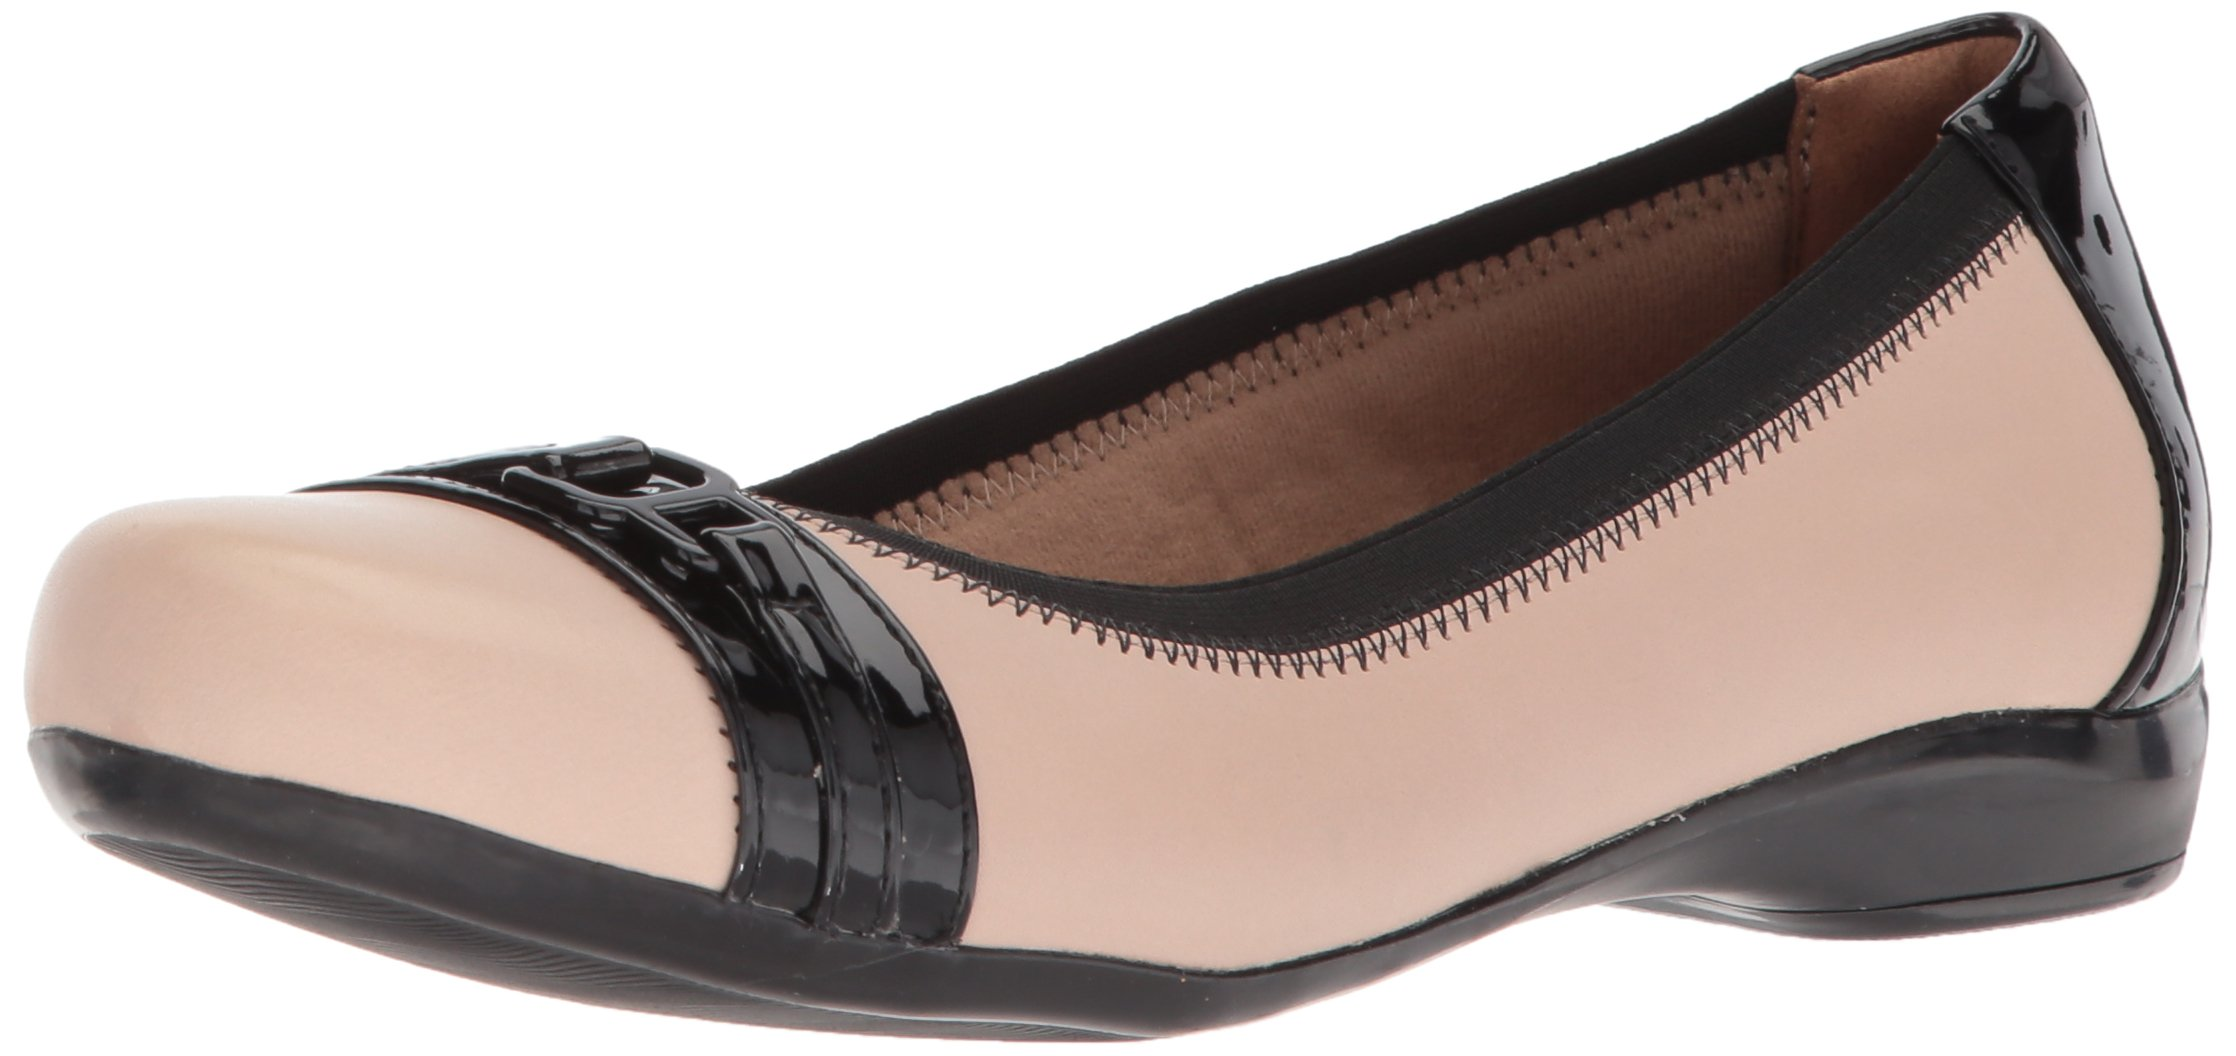 CLARKS Women's Kinzie Light Loafer Flat, Cream Leather/Synthetic Patent, 5.5 Medium US